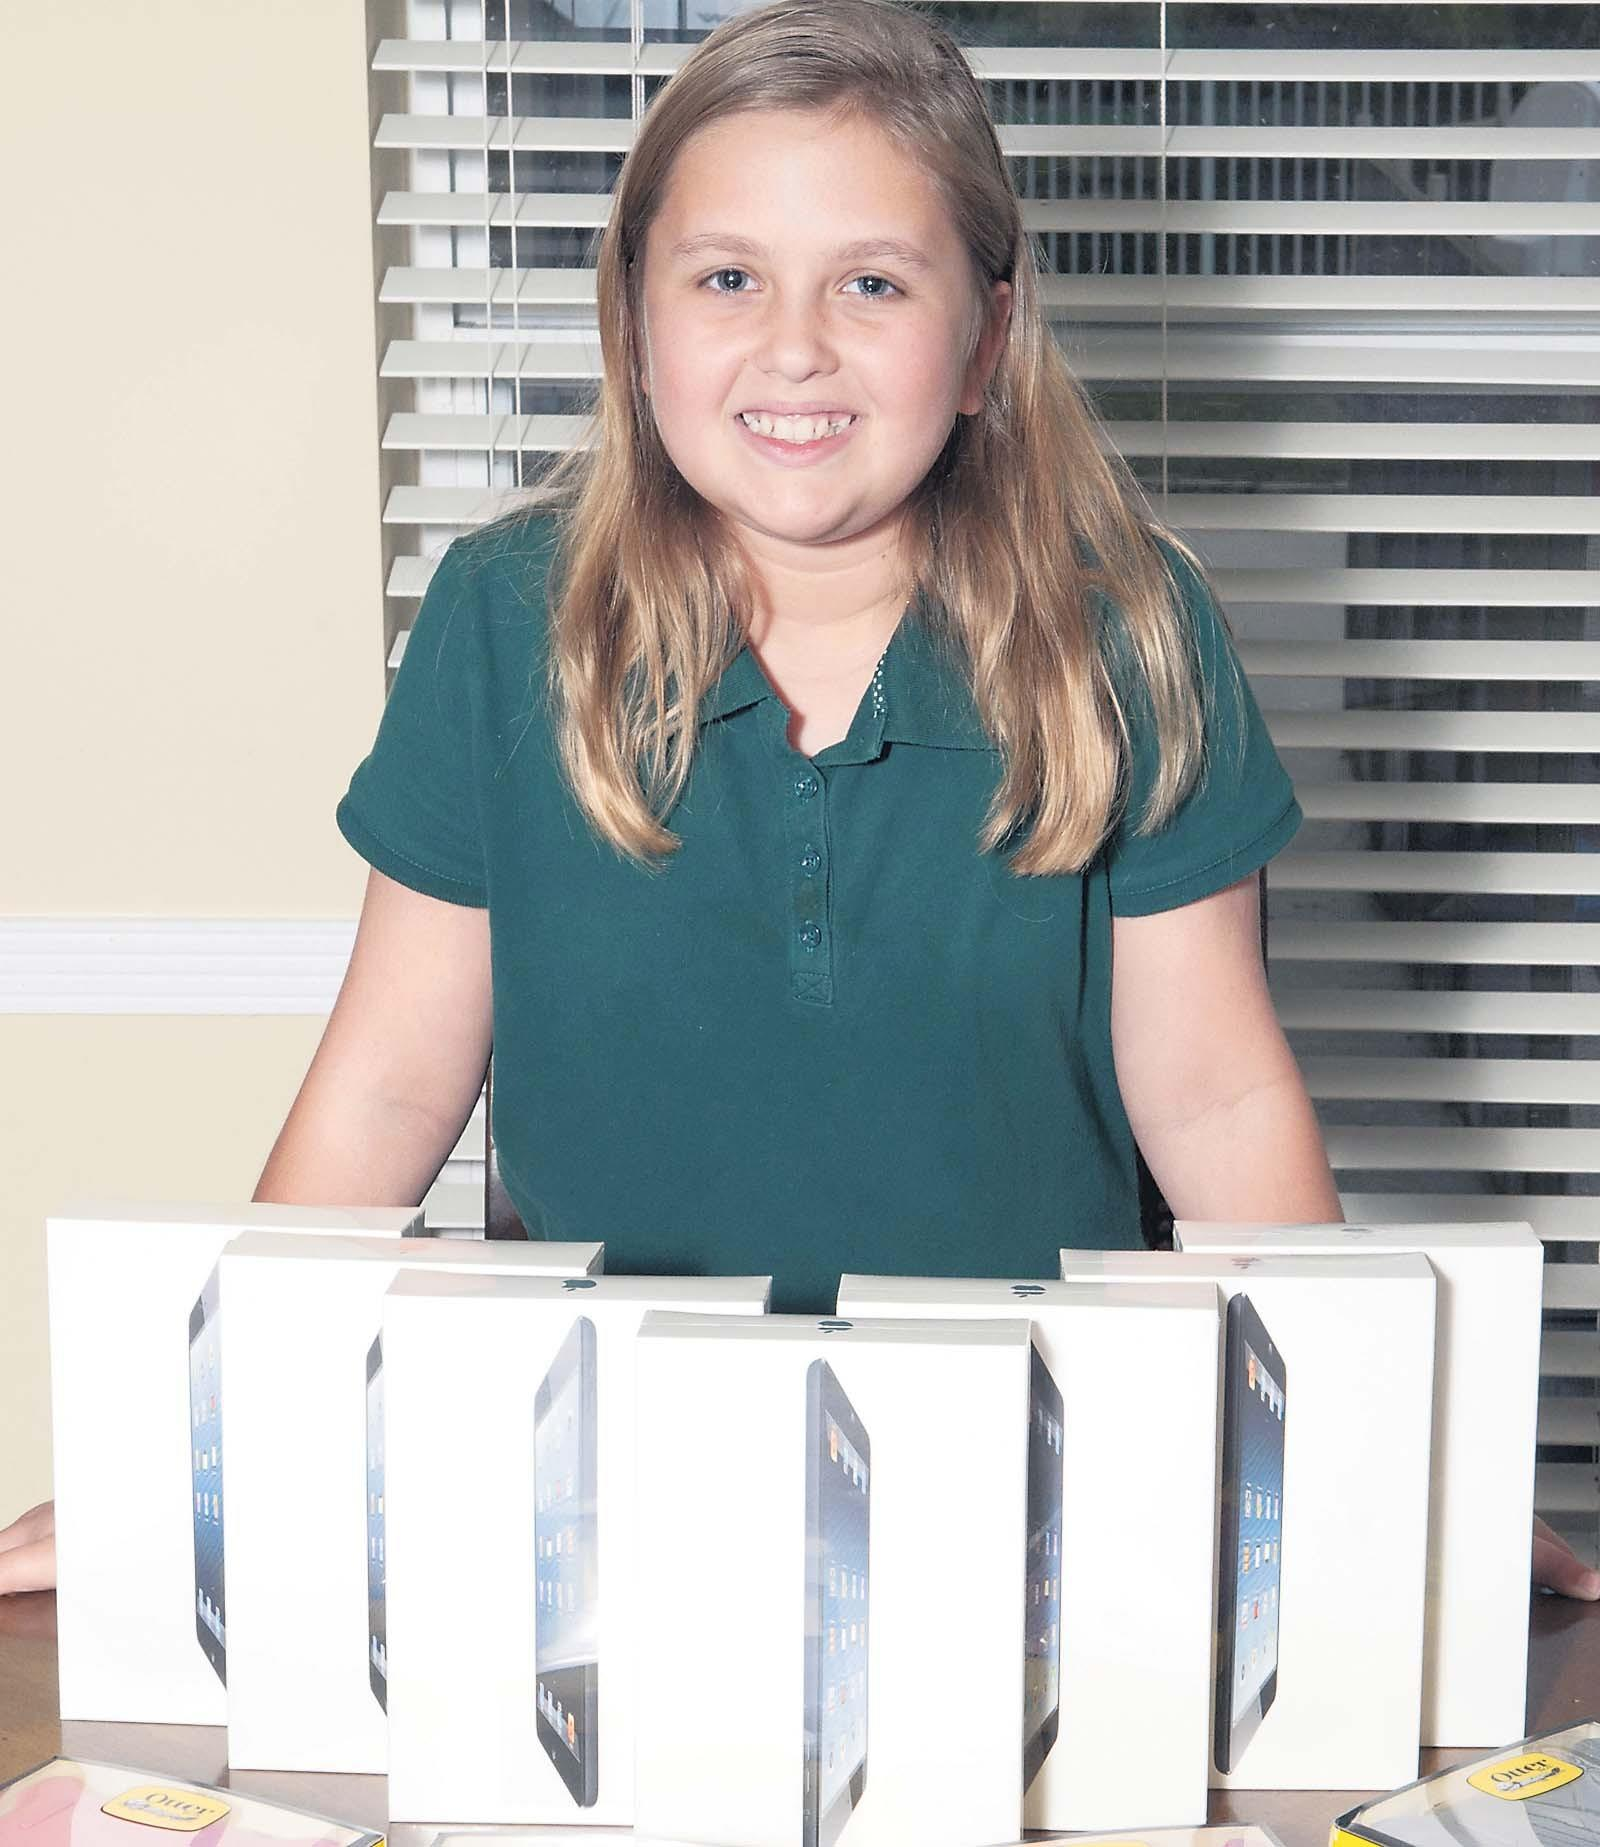 Sarah Clein, 11, a fourth-grader at Binks Forest Elementary School in Wellington, raised money to buy iPads and collected used one to start a lending library for patients at Joe DiMaggio Children's Hospital in Hollywood.